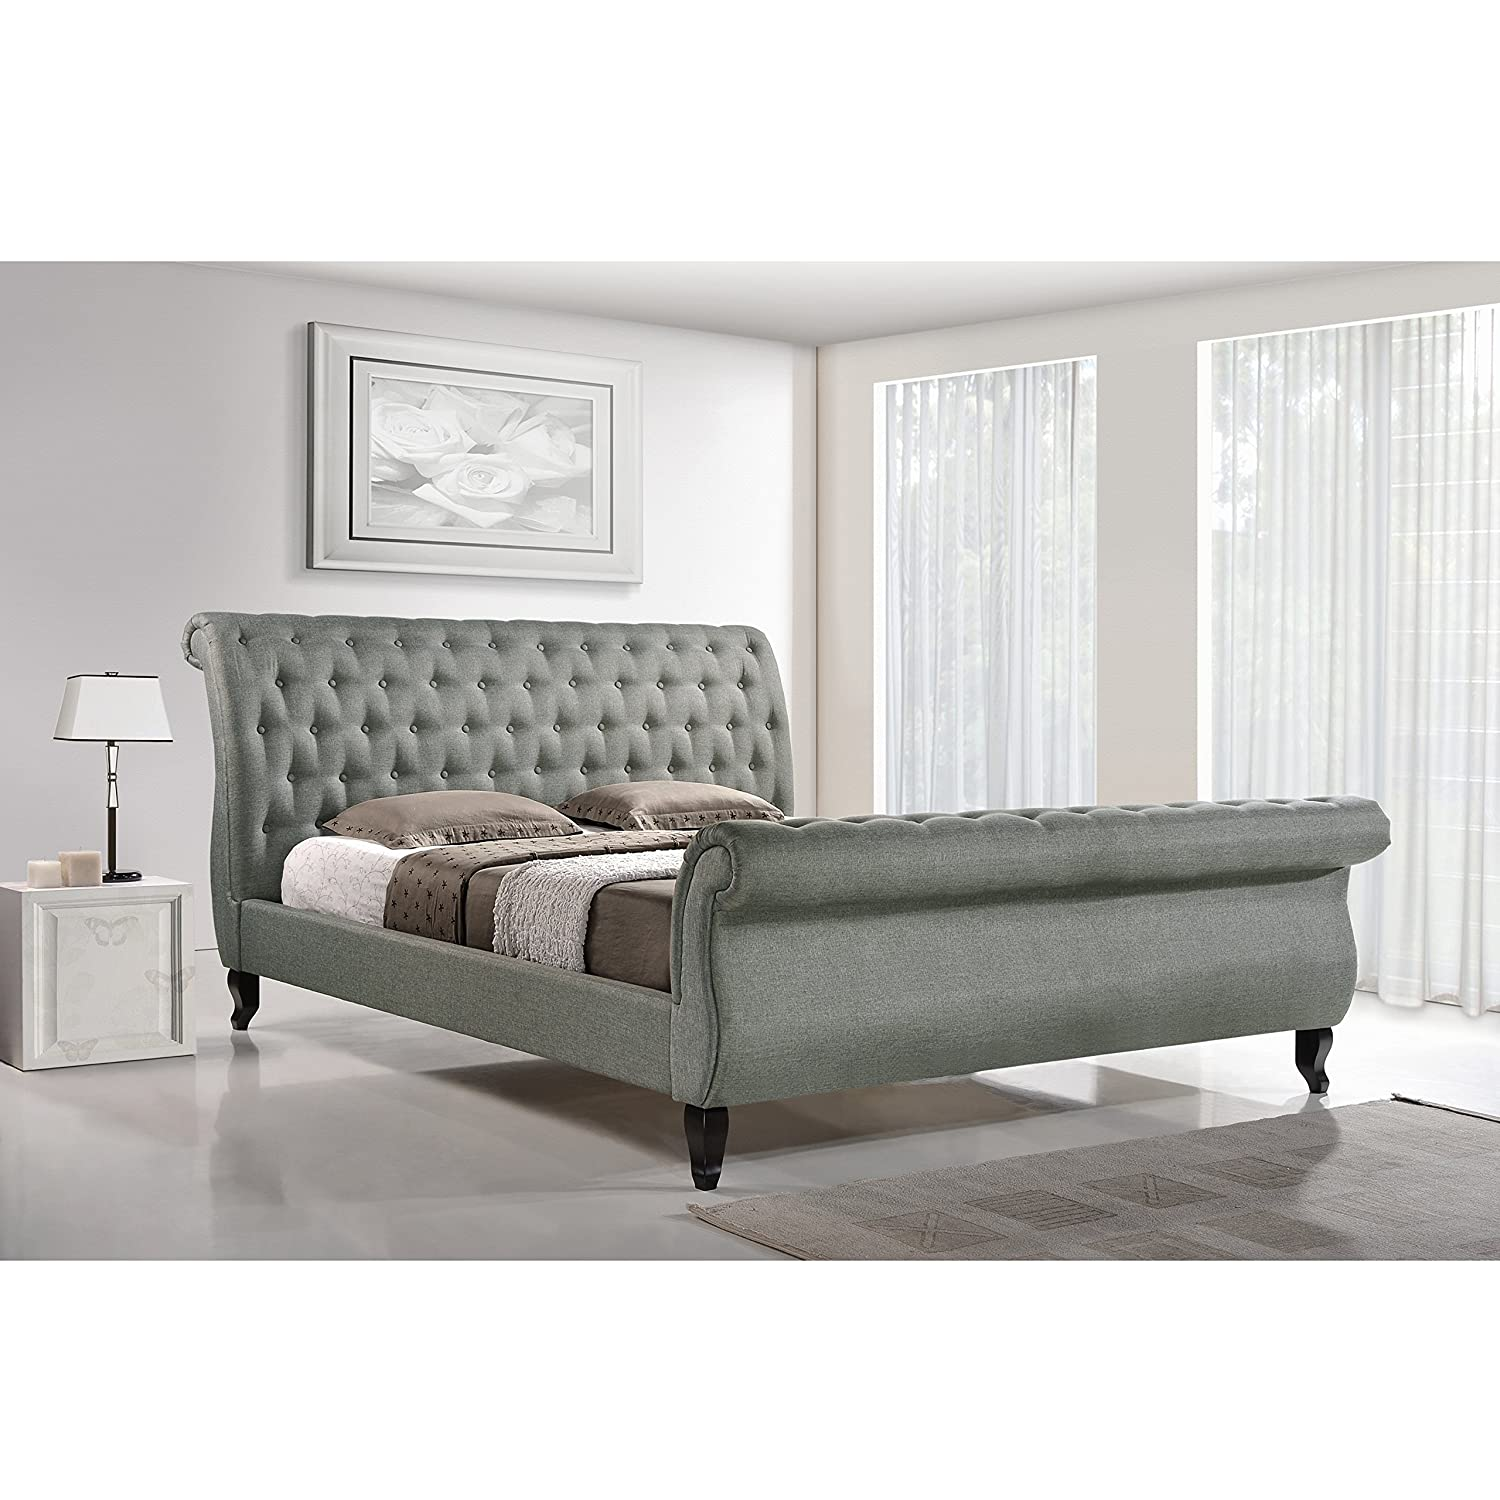 Design Modern Sleigh Bed amazon com baxton studio antoinette modern platform bed queen grey kitchen dining